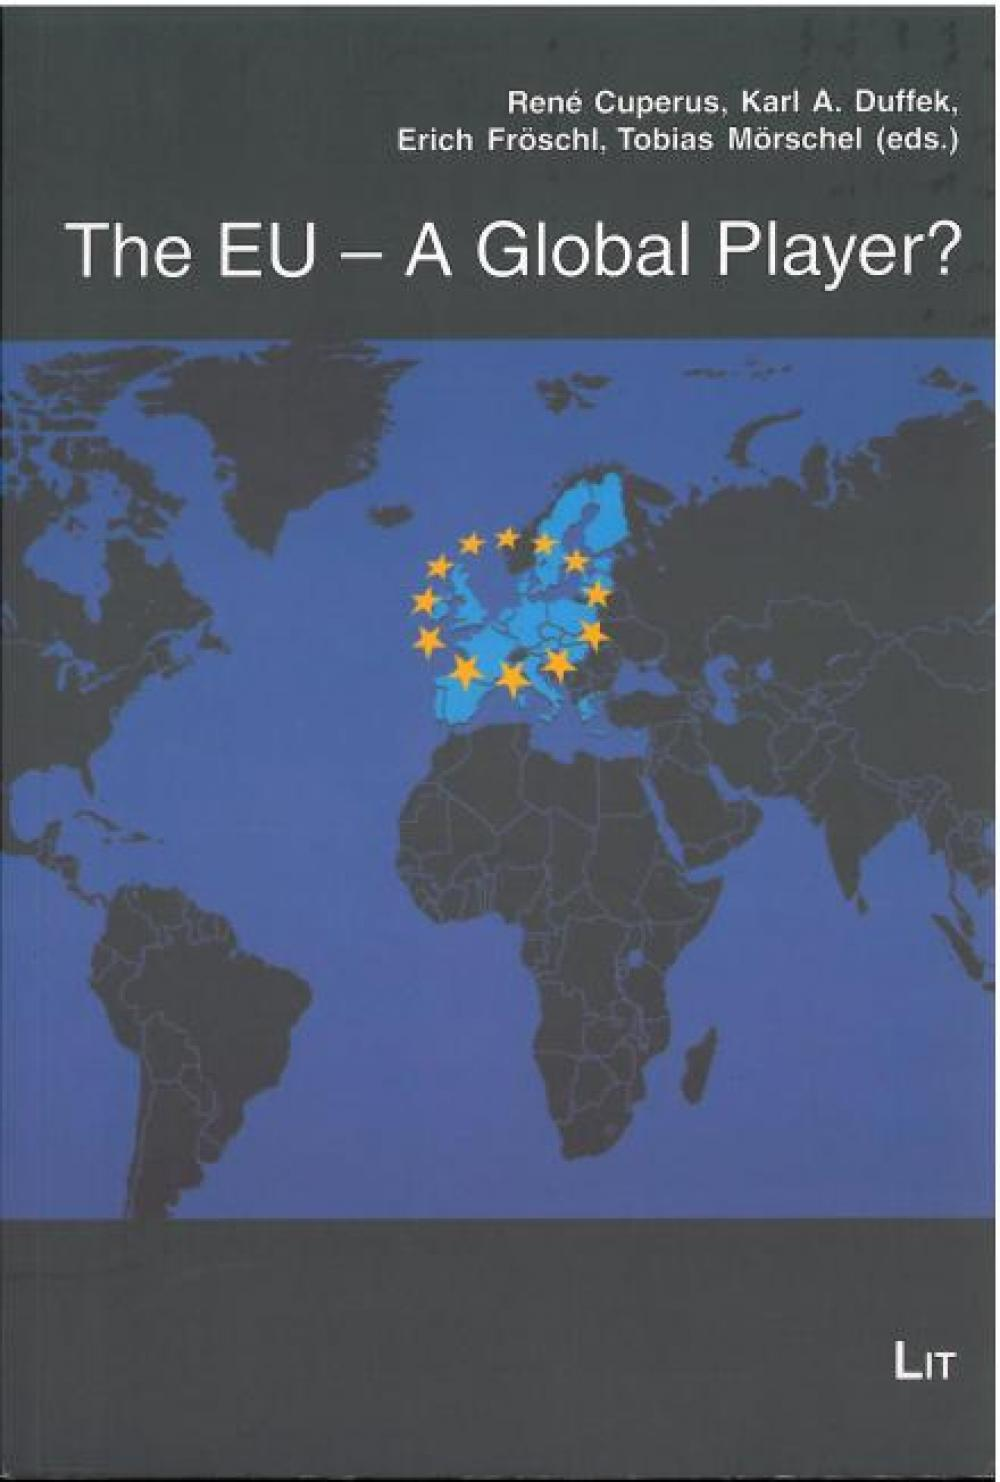 The EU - A Global Player?